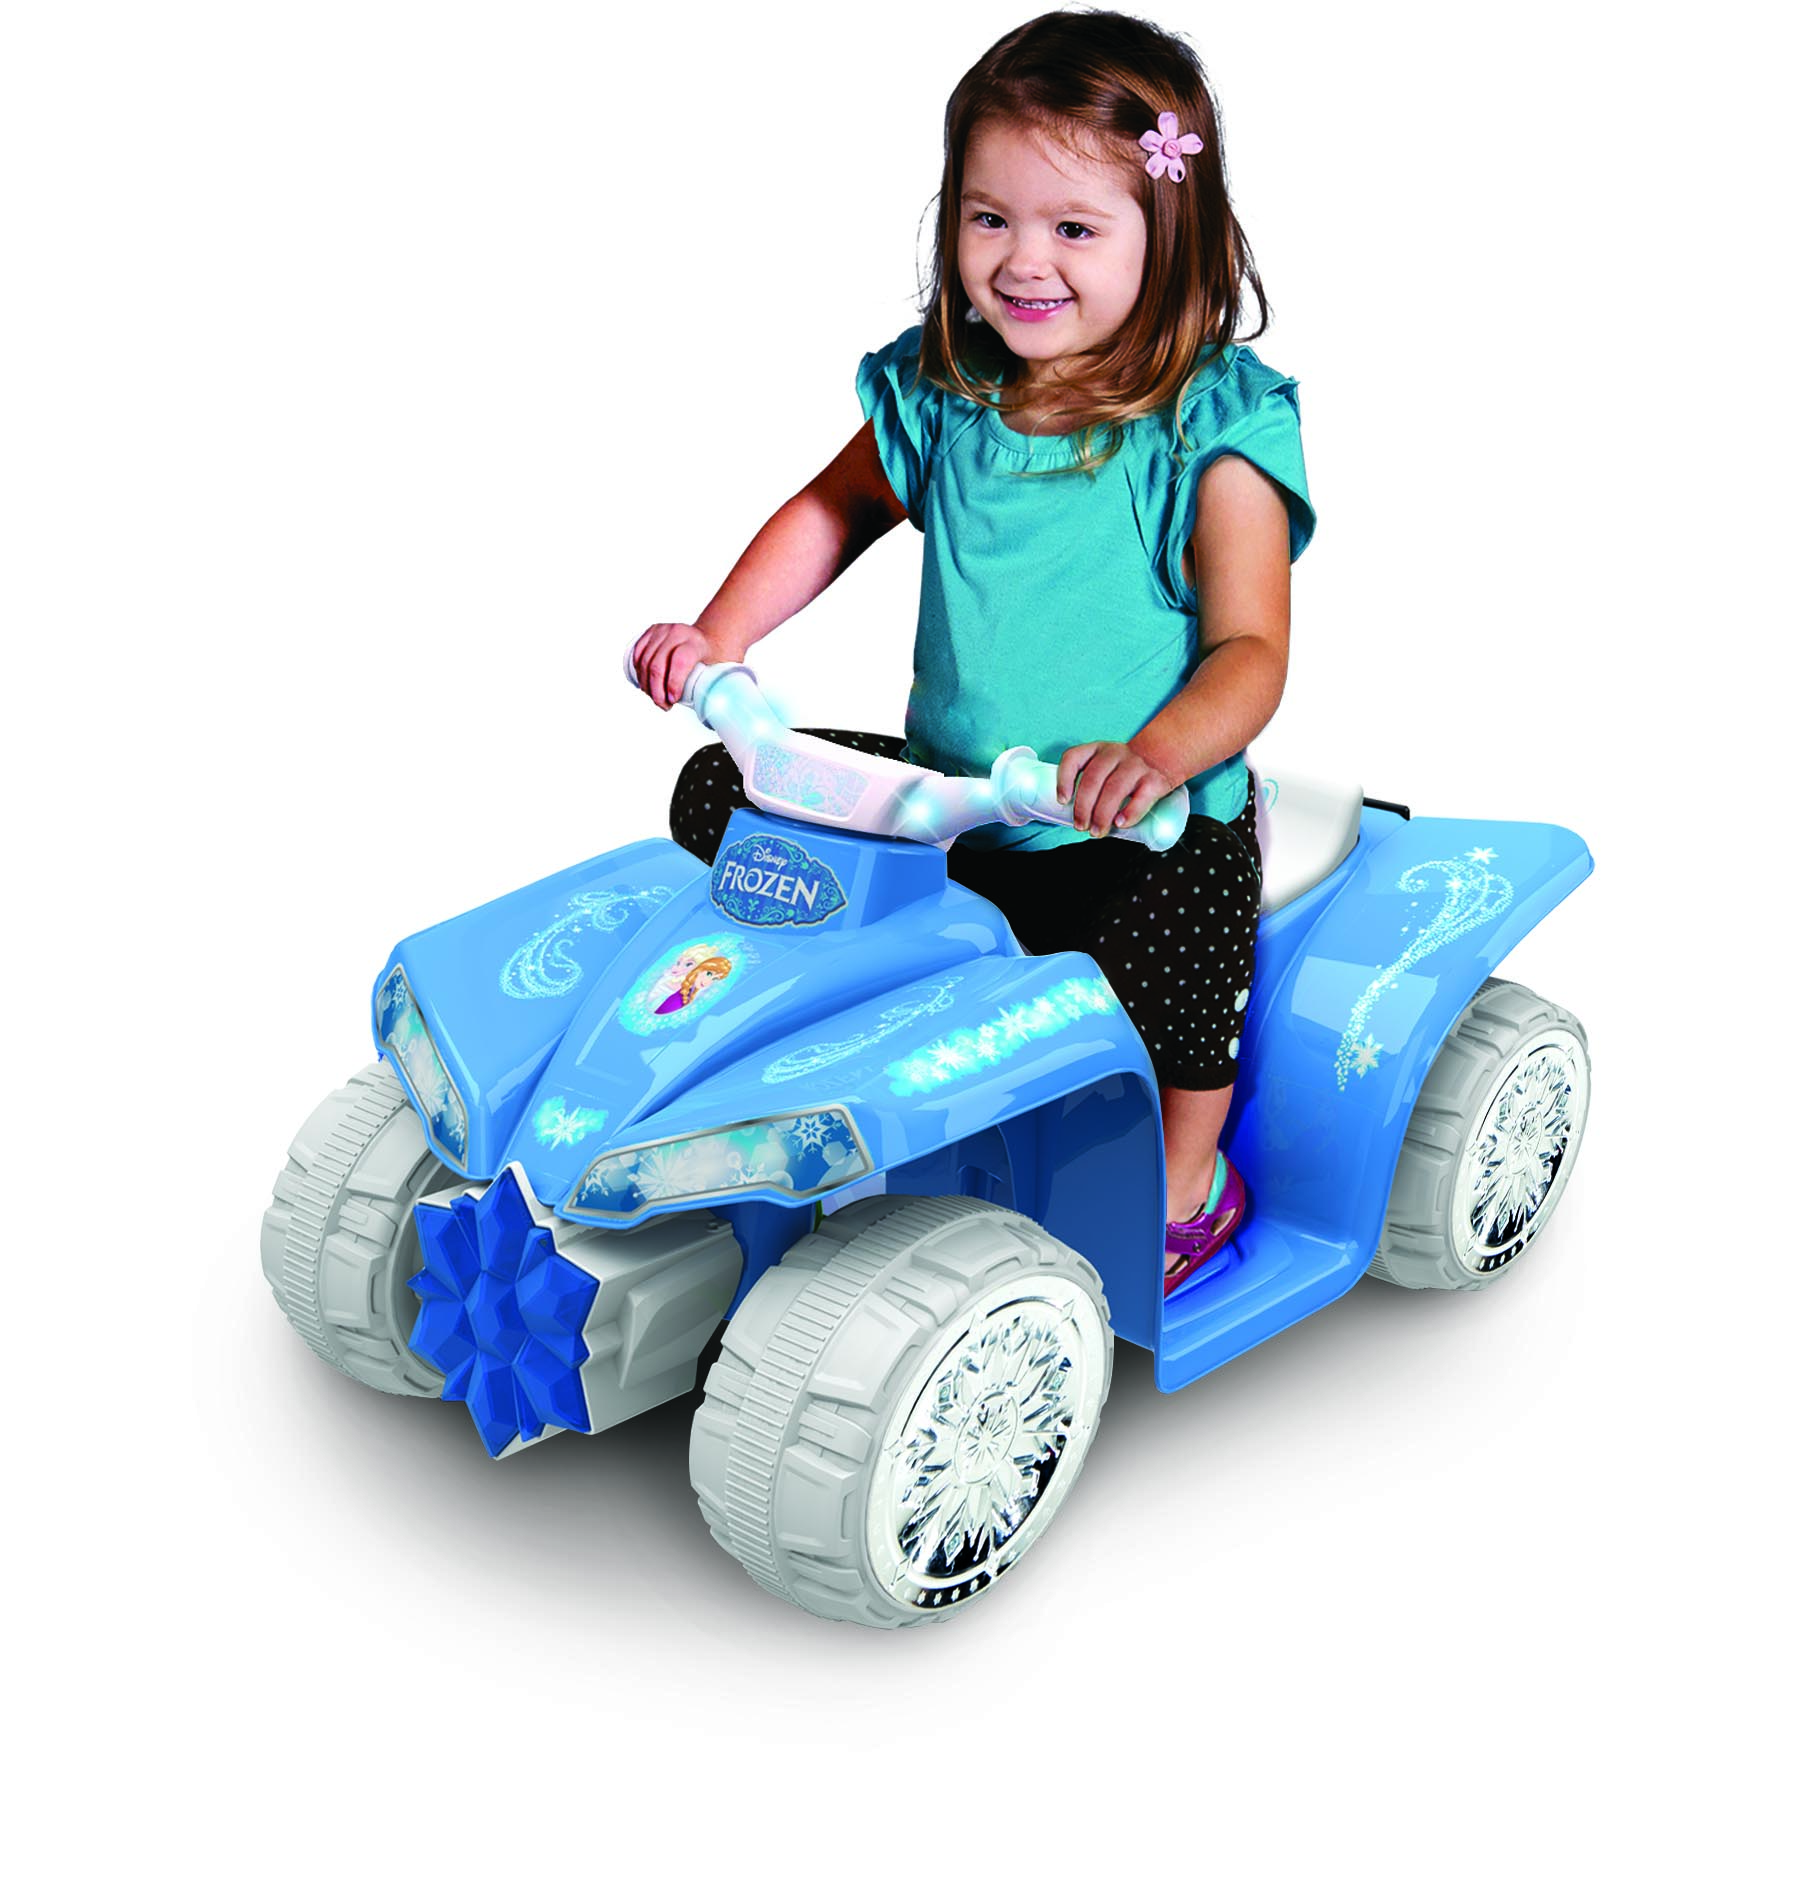 6V Light-Up Frozen Quad with Chrome snowflake wheel covers